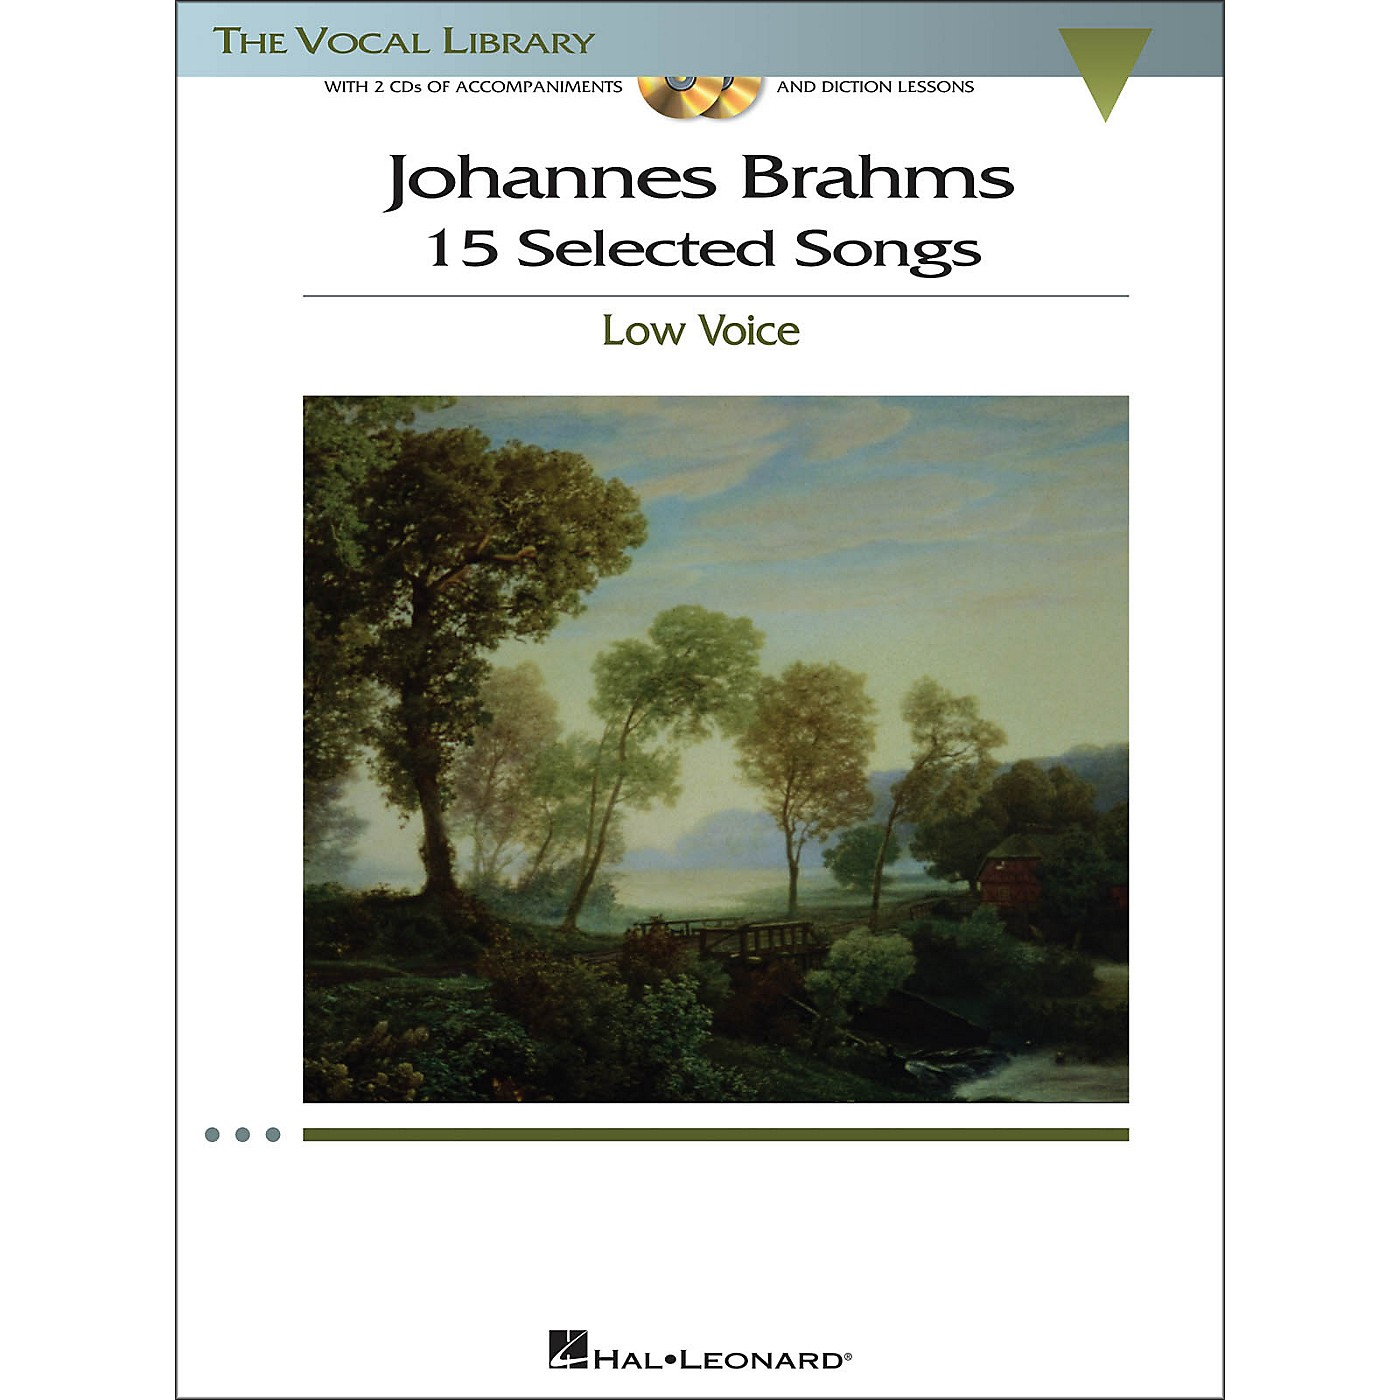 Hal Leonard Brahms - 15 Selected Songs for Low Voice (The Vocal Library Series) Book / 2 CD's thumbnail